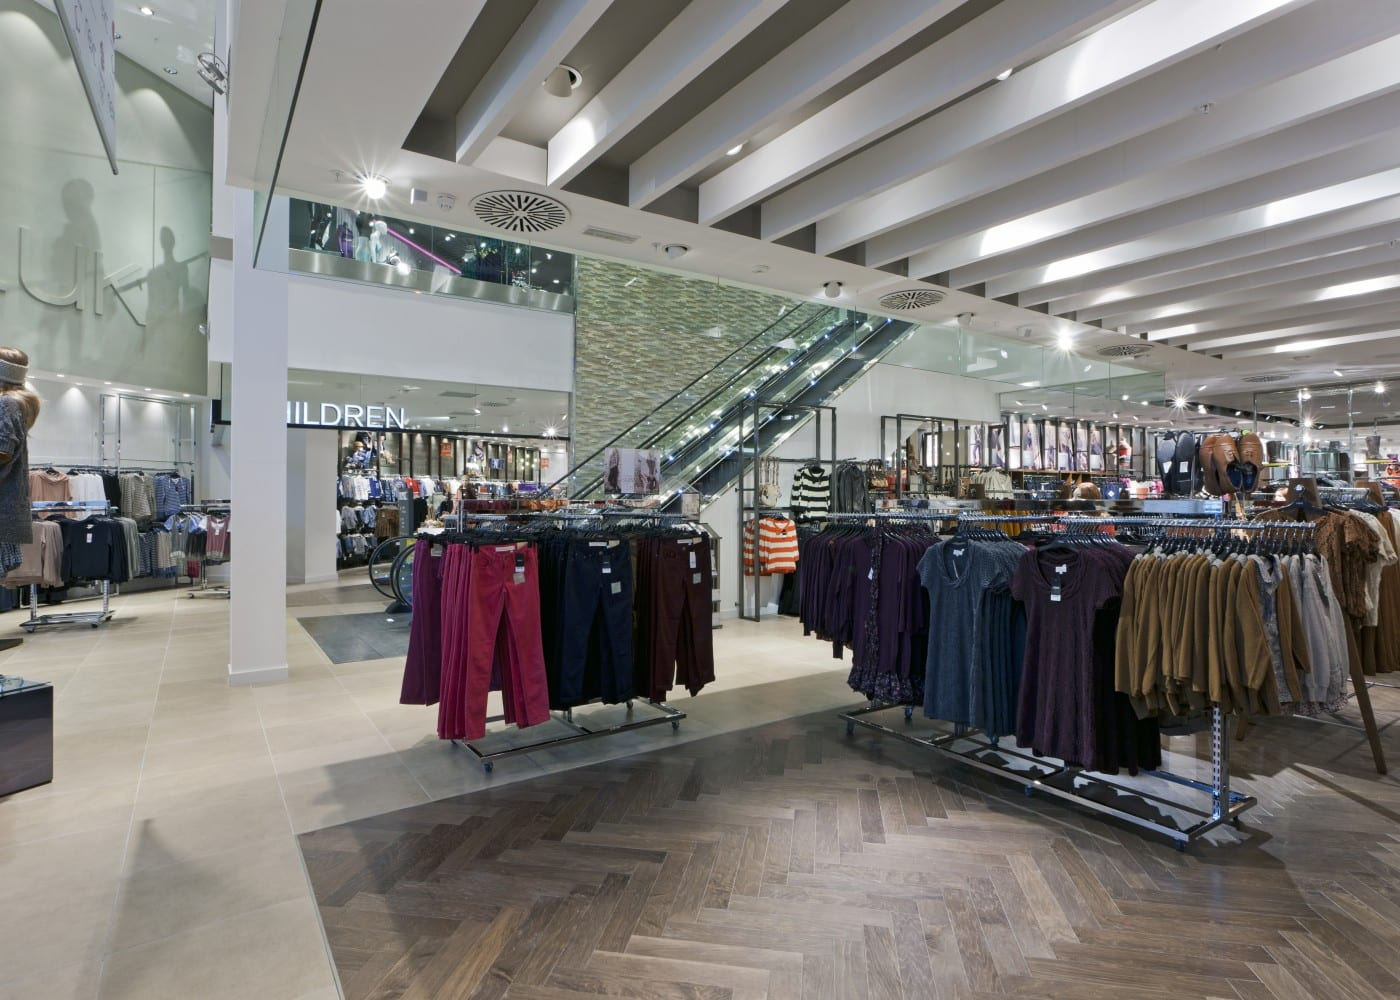 retail lighting design: Next shop floor